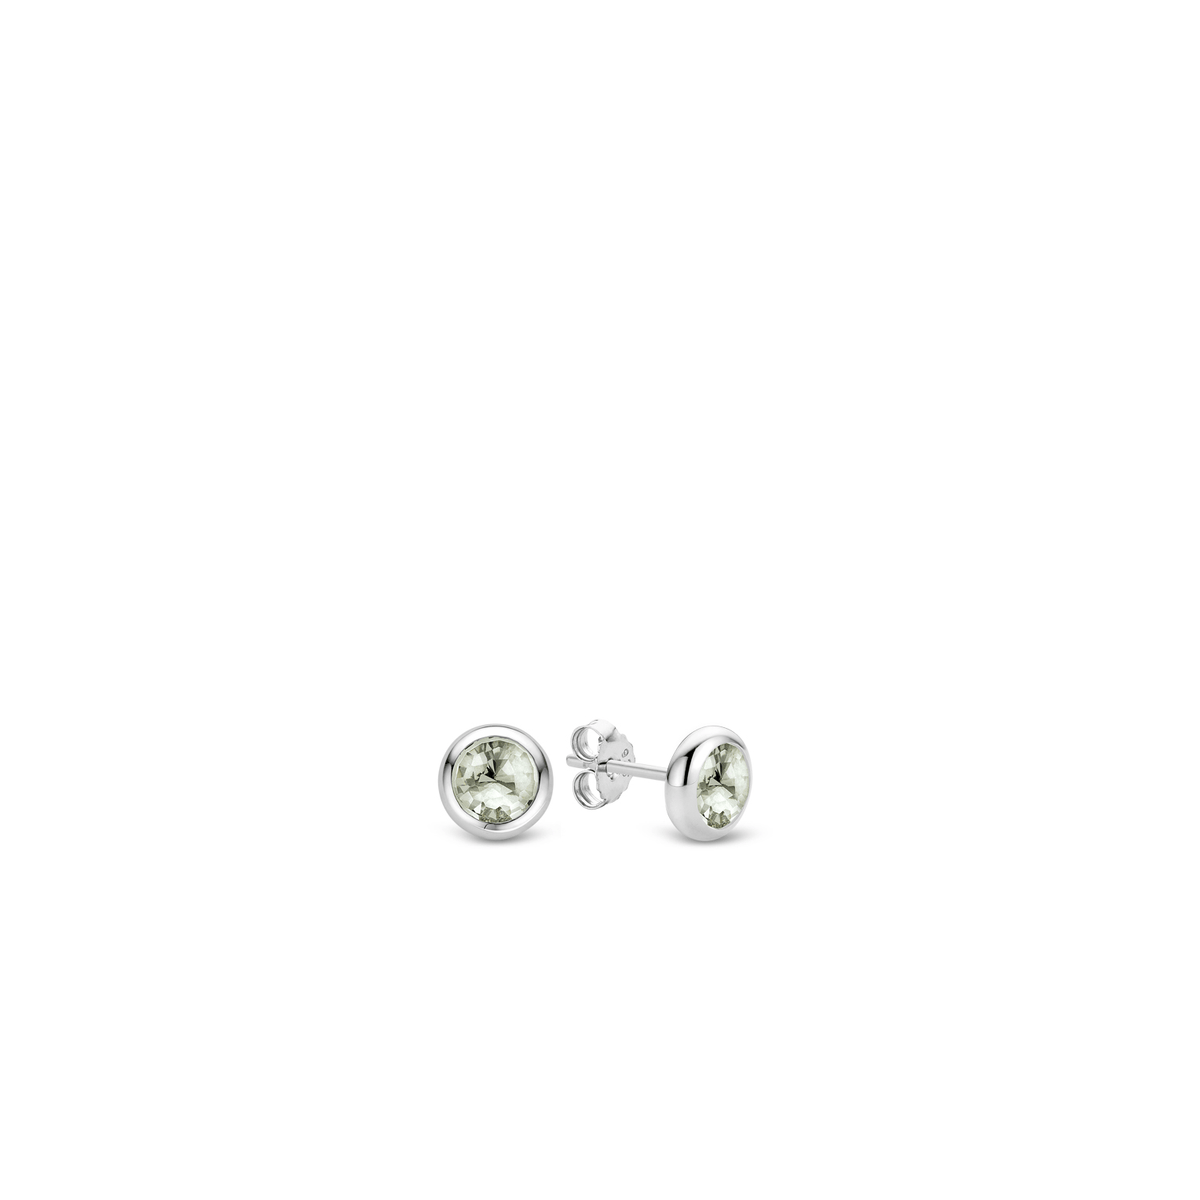 TI SENTO - Milano Earrings 7748GG